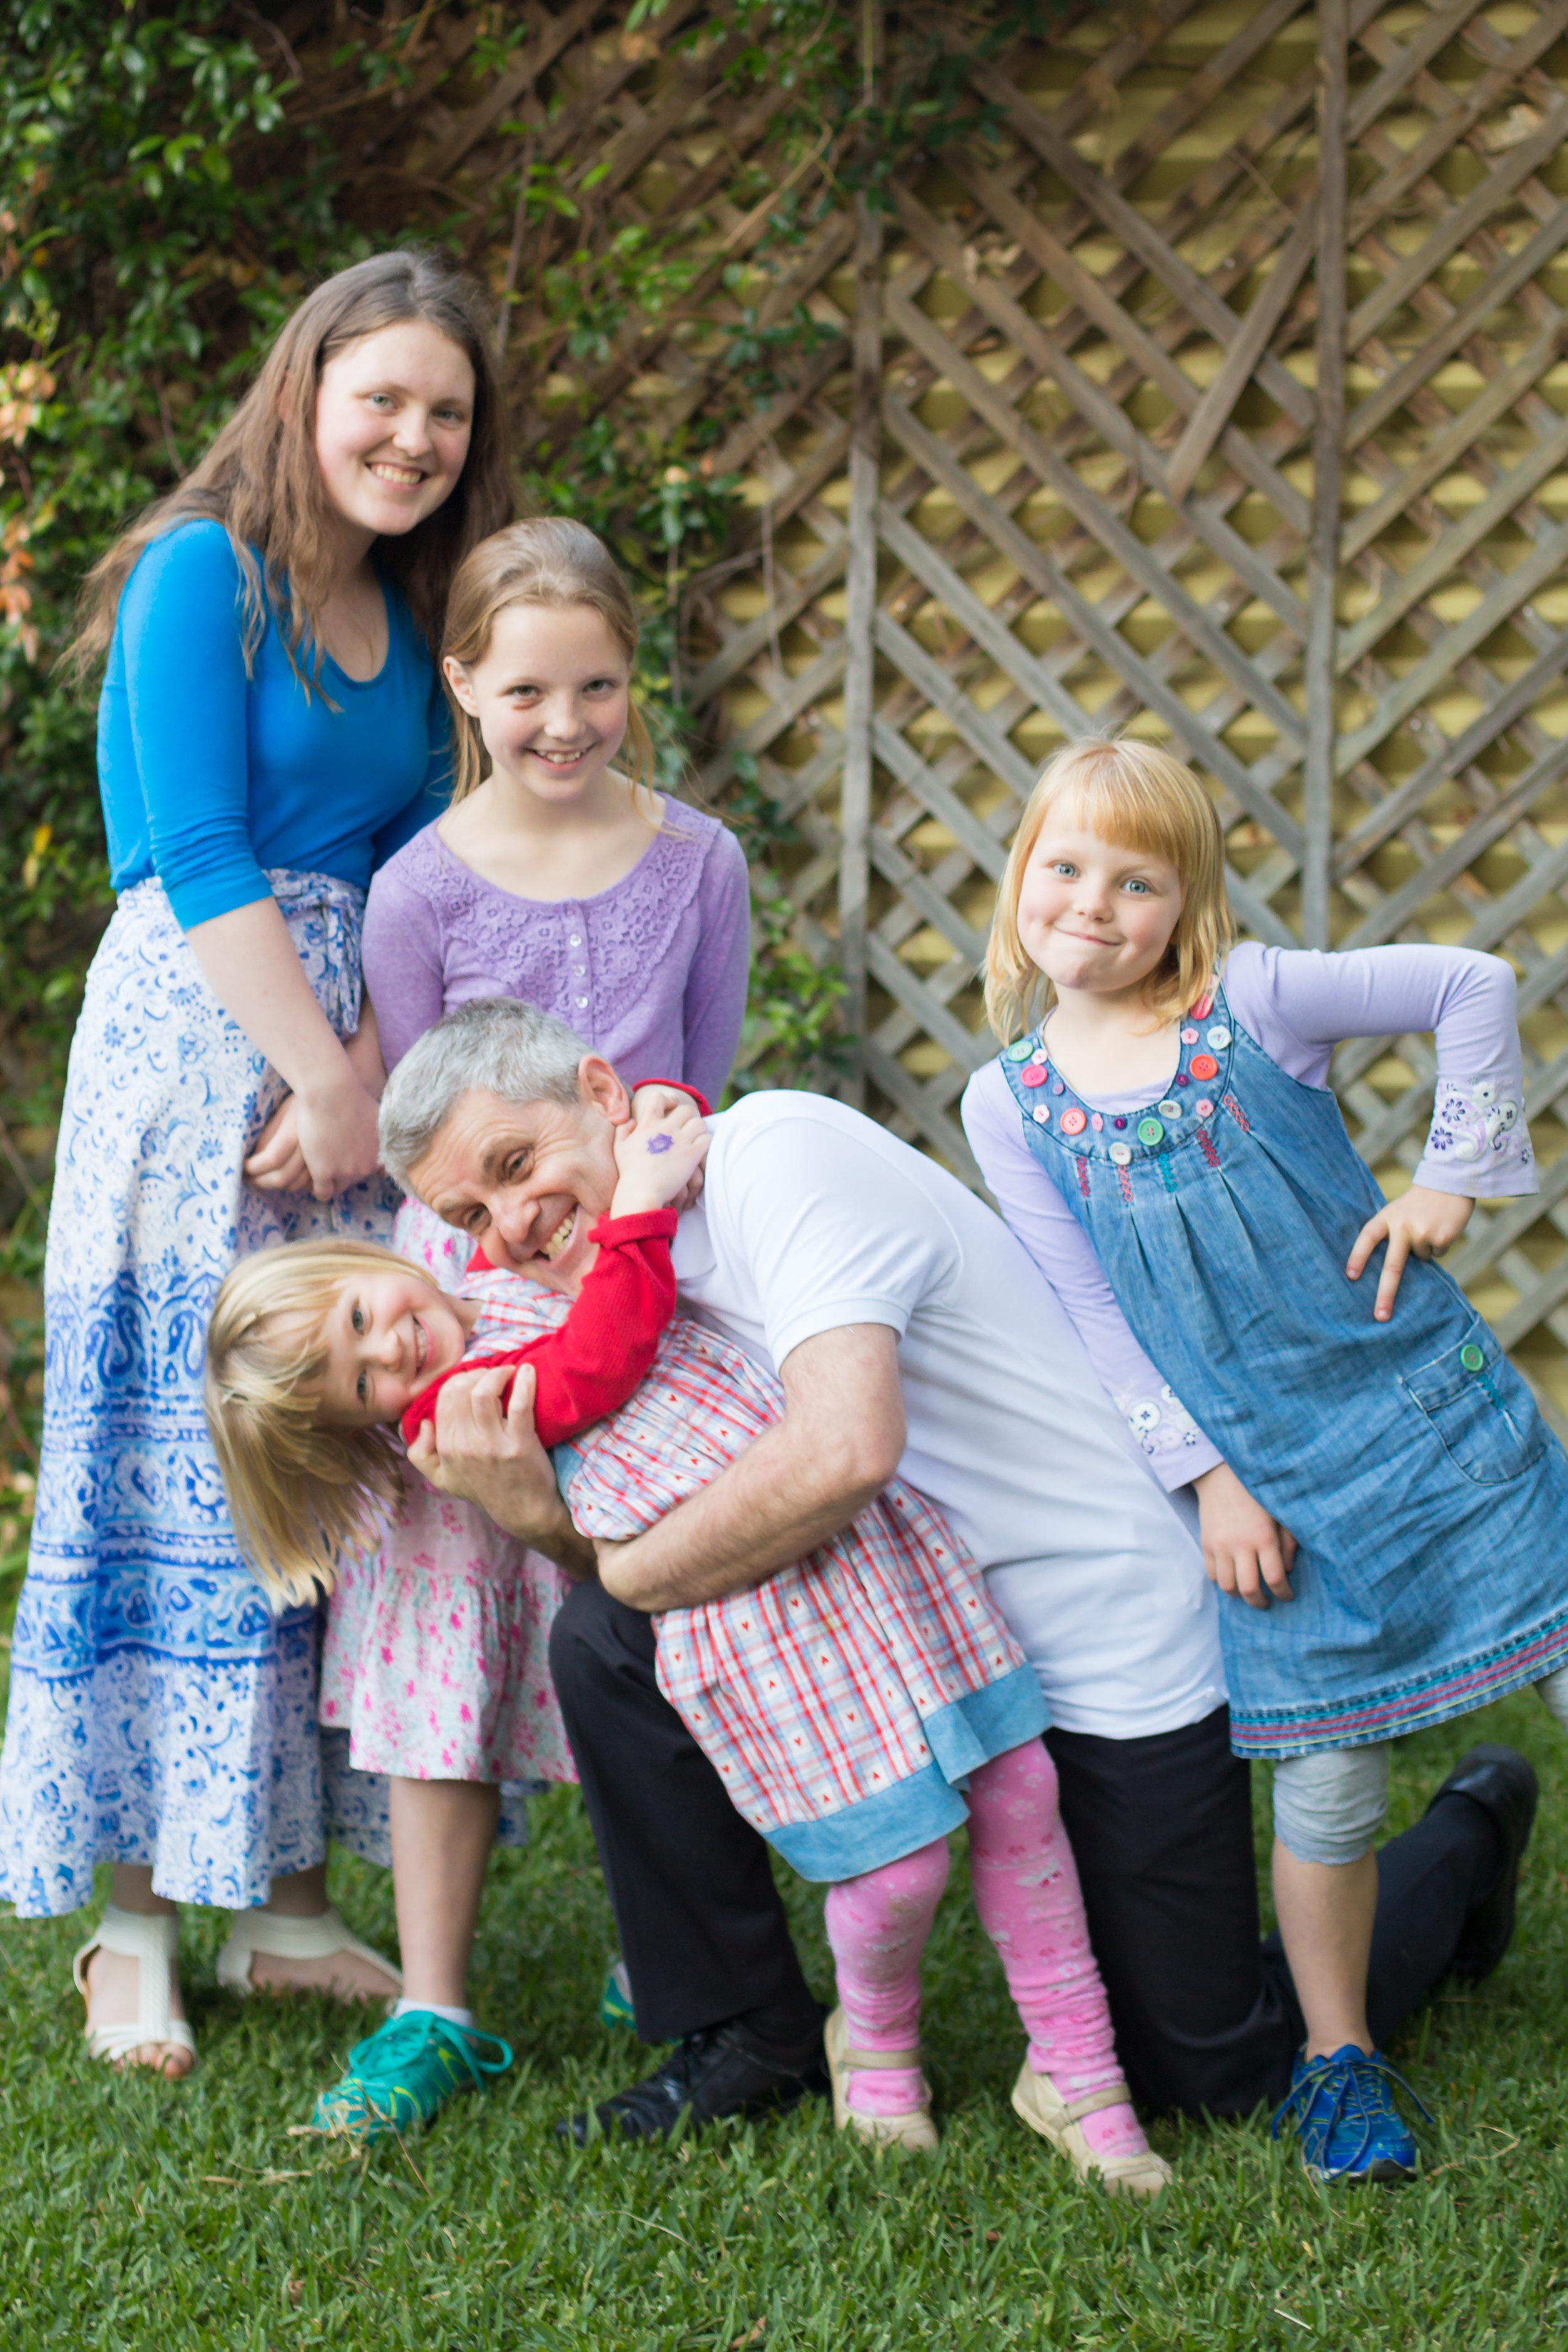 Four of my seven beautiful children - keeping dad young (at least at heart)! They are the most cunning negotiators in the world, using everything from emotional blackmail to sweet promises to make you go their way.